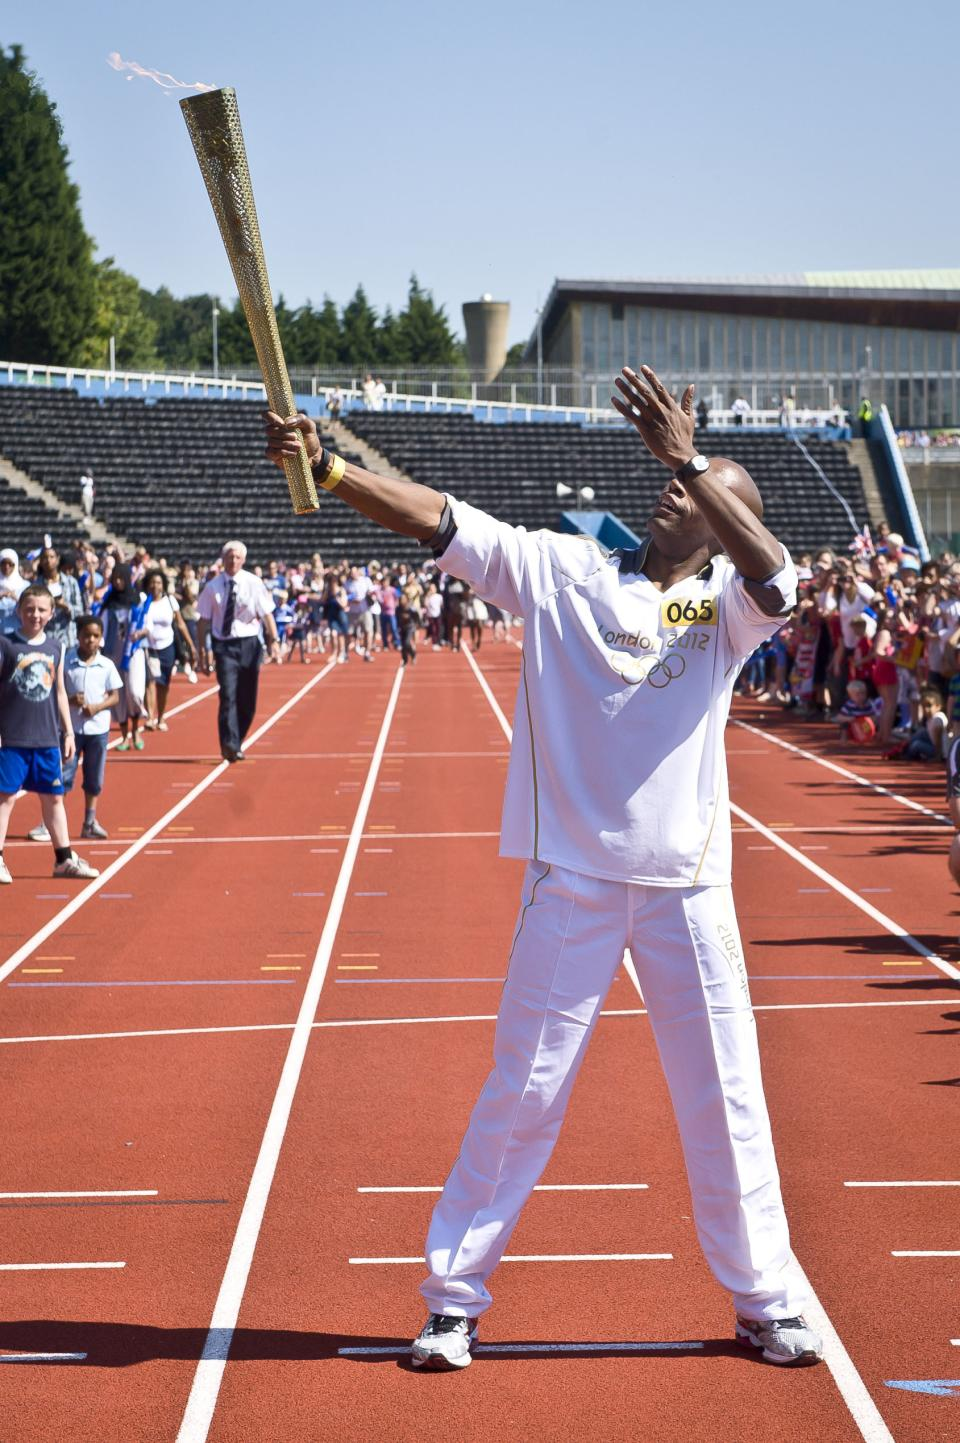 In this photo provided by LOCOG, Marlon Devonish carries the Olympic Flame at Crystal Palace stadium on the Torch Relay leg between Bromley and Croydon in London on Monday July 23, 2012. The opening ceremonies of the 2012 Summer Olympics are scheduled for Friday, July 27. (AP Photo/LOCOG, Ben Birchall)